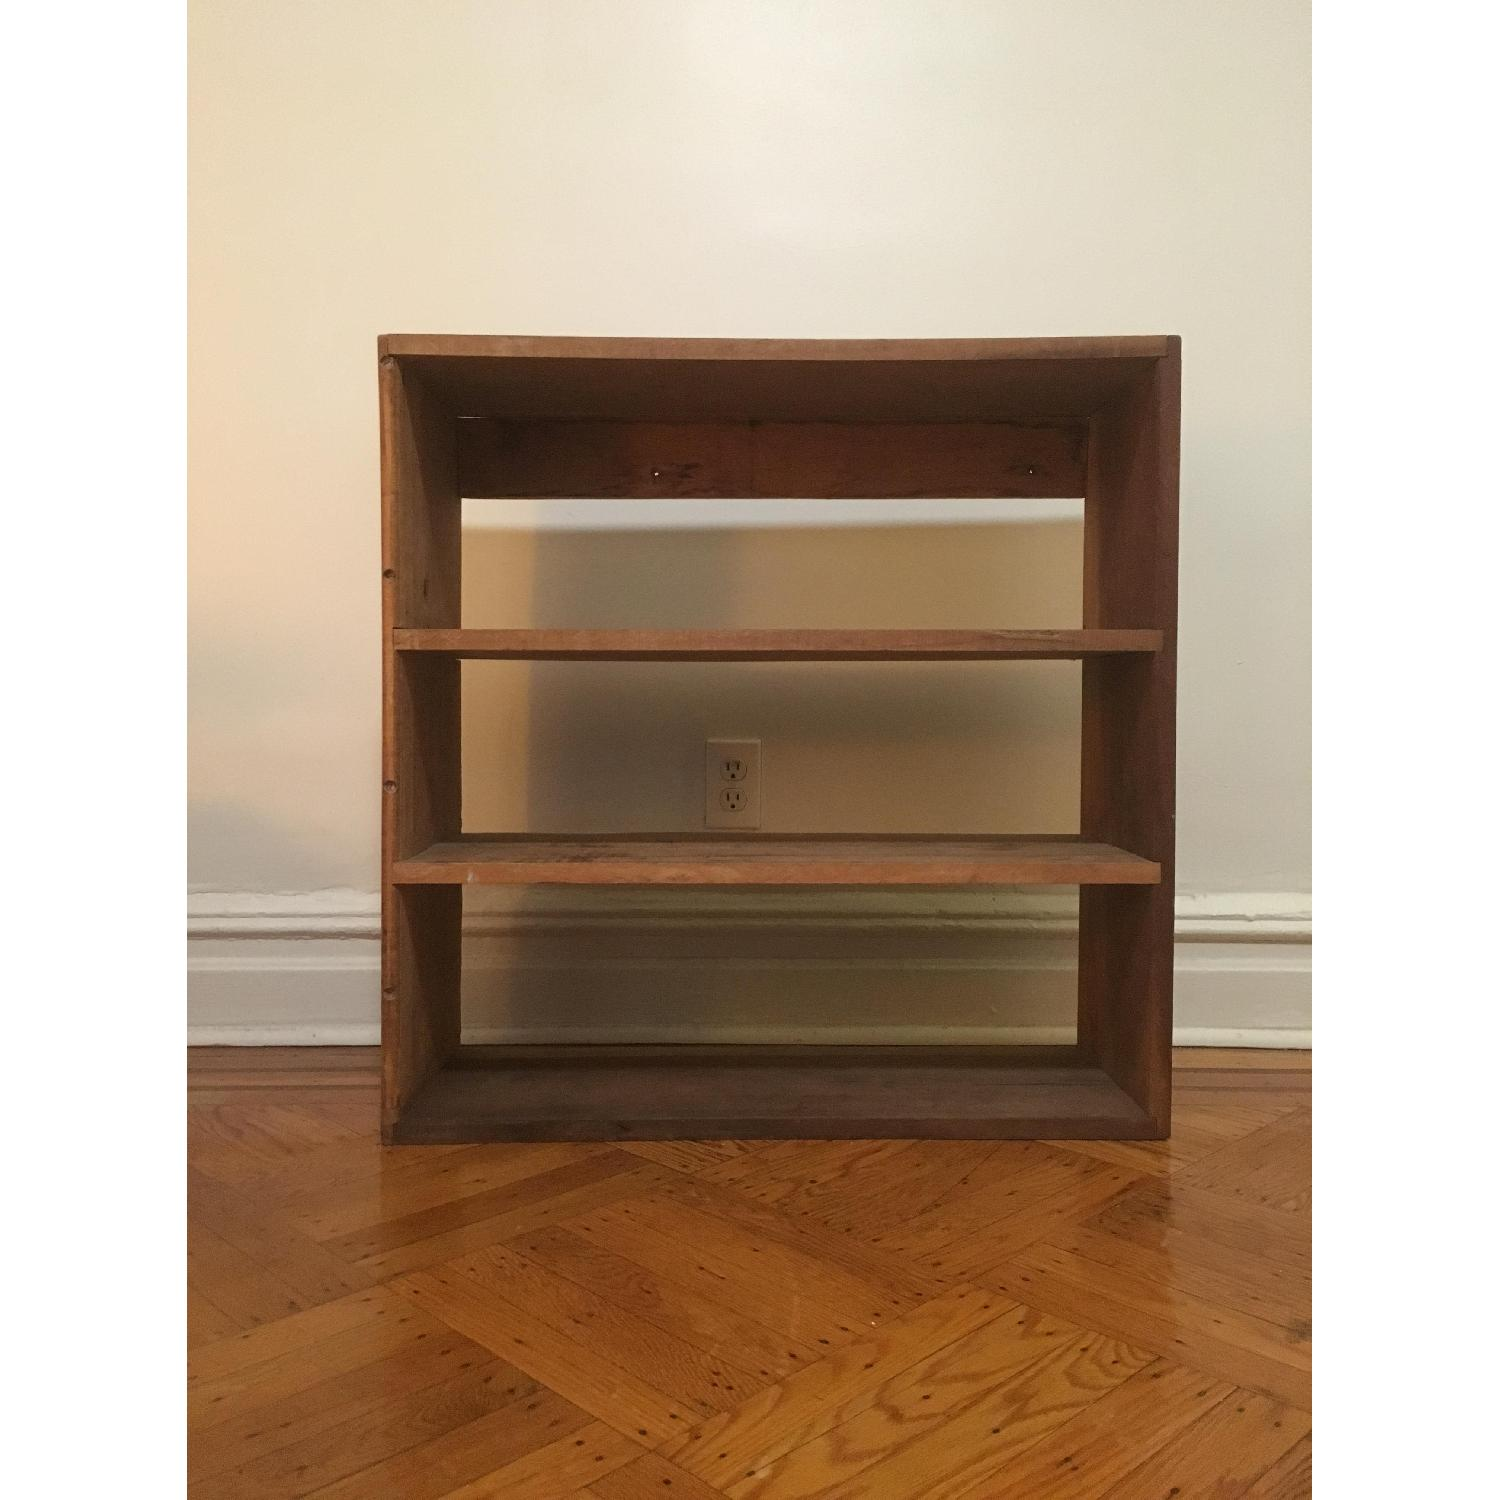 Vintage Bookcase w/ 3 Shelves - image-2